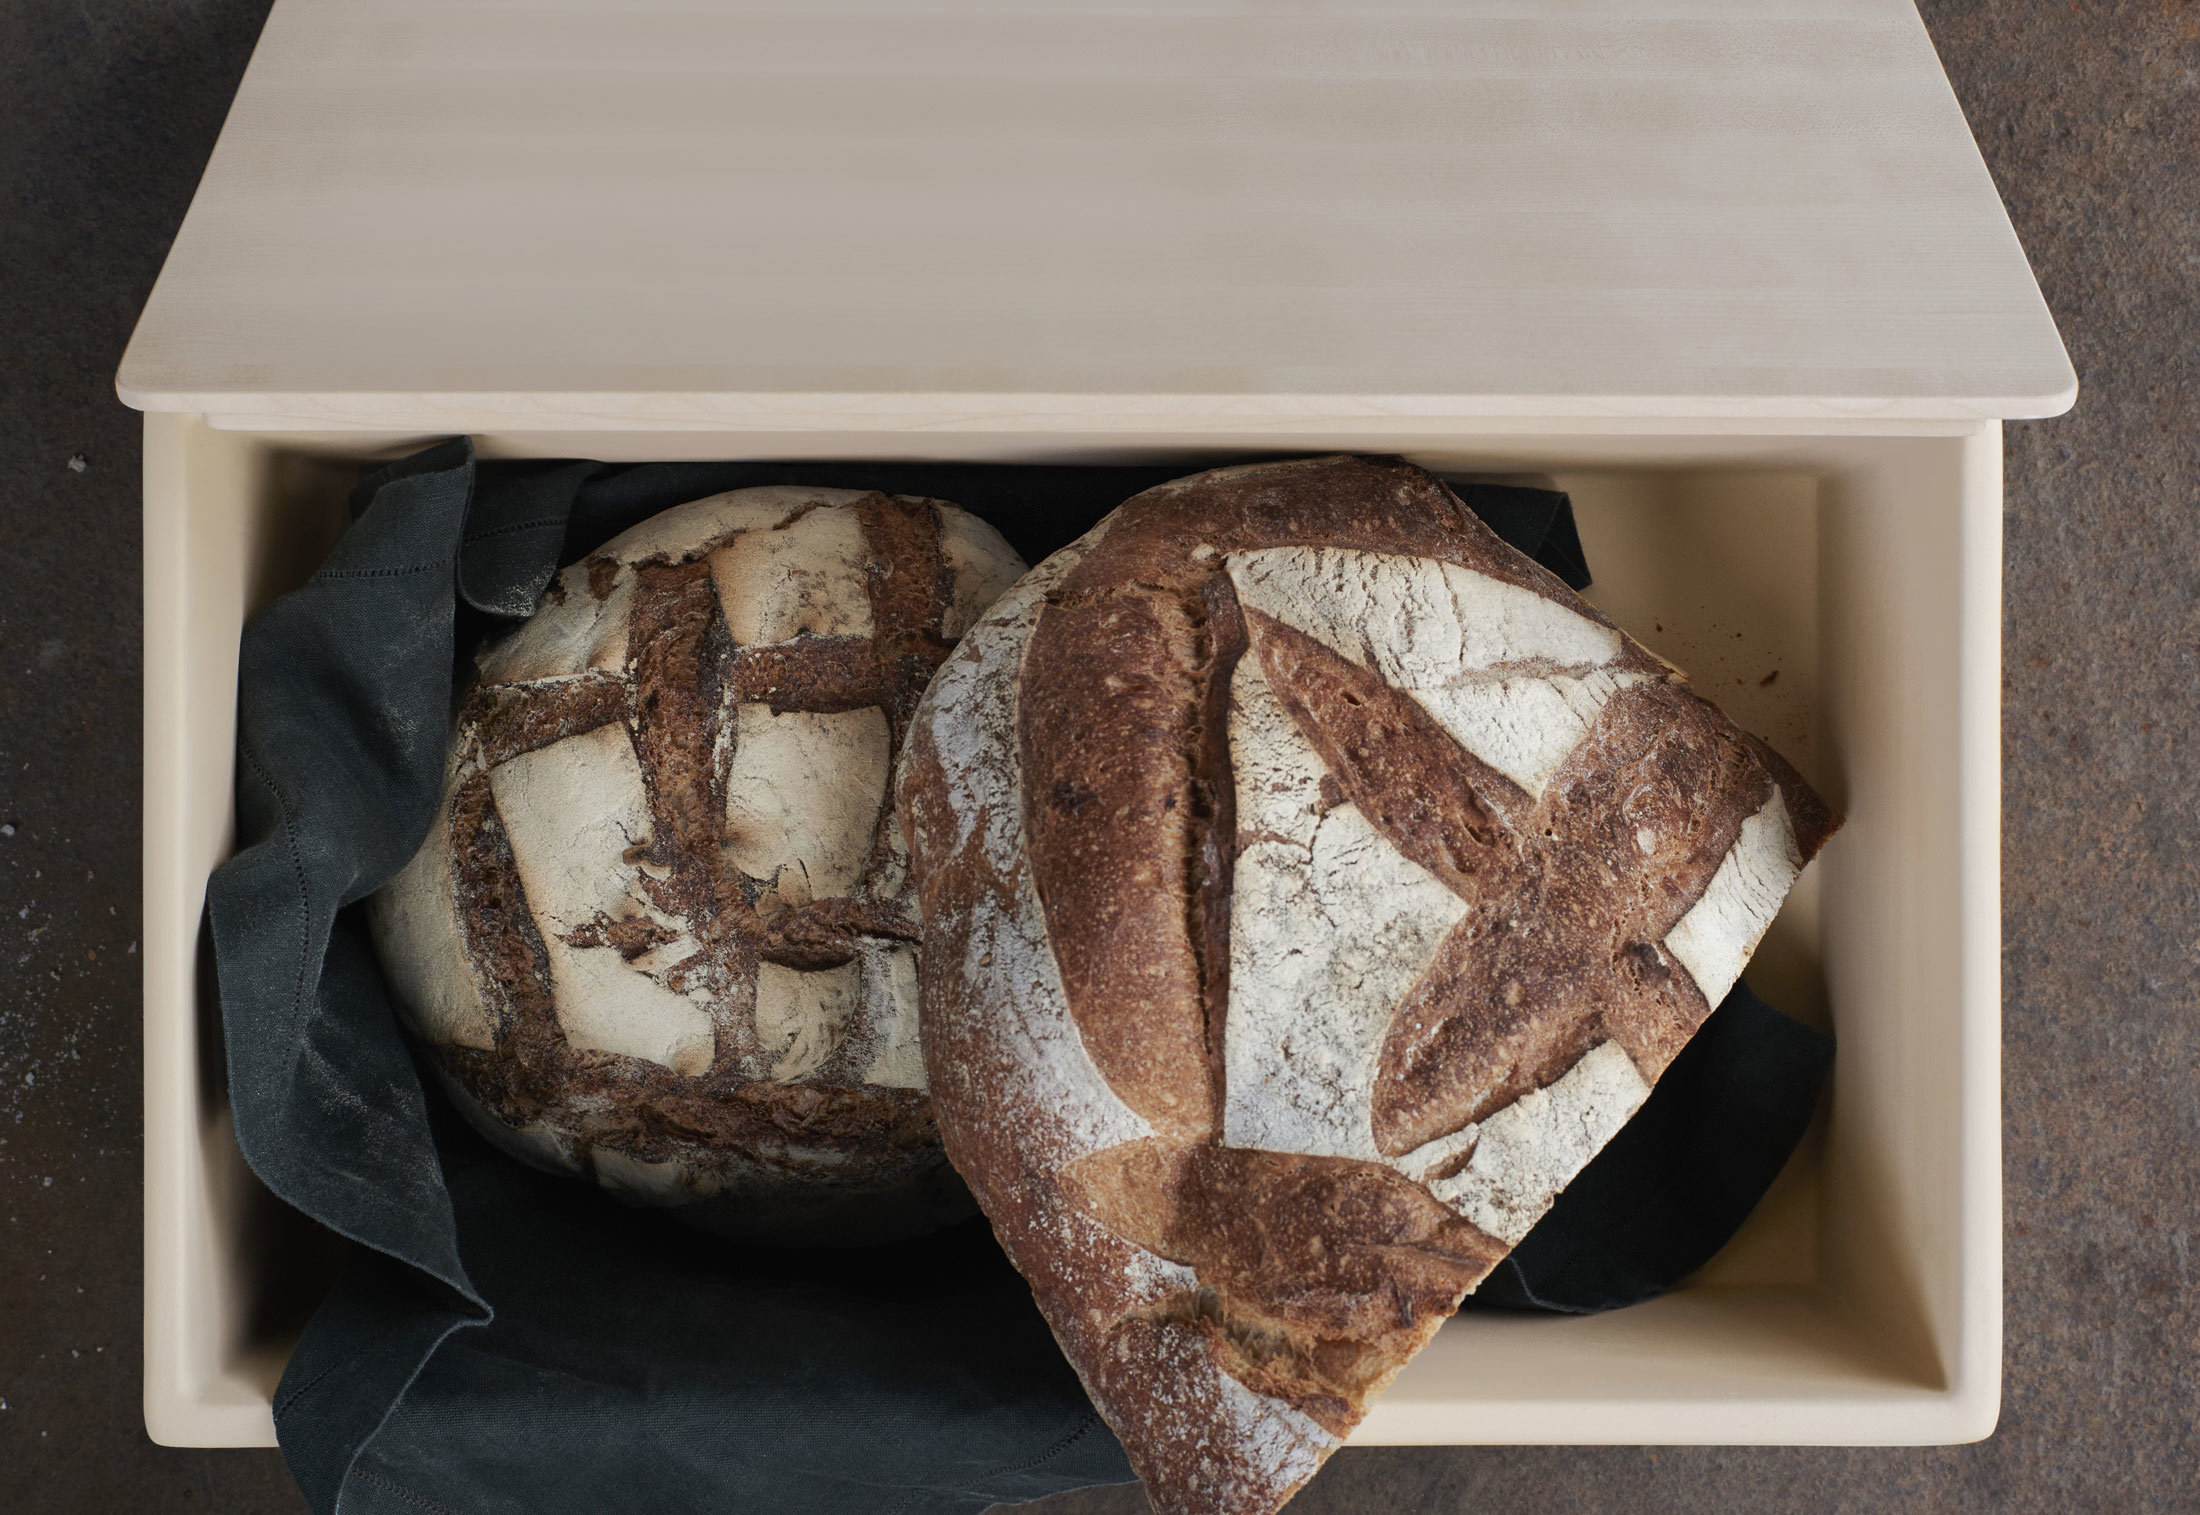 Bulthaup Wiesbaden bulthaup bread container by bulthaup stylepark